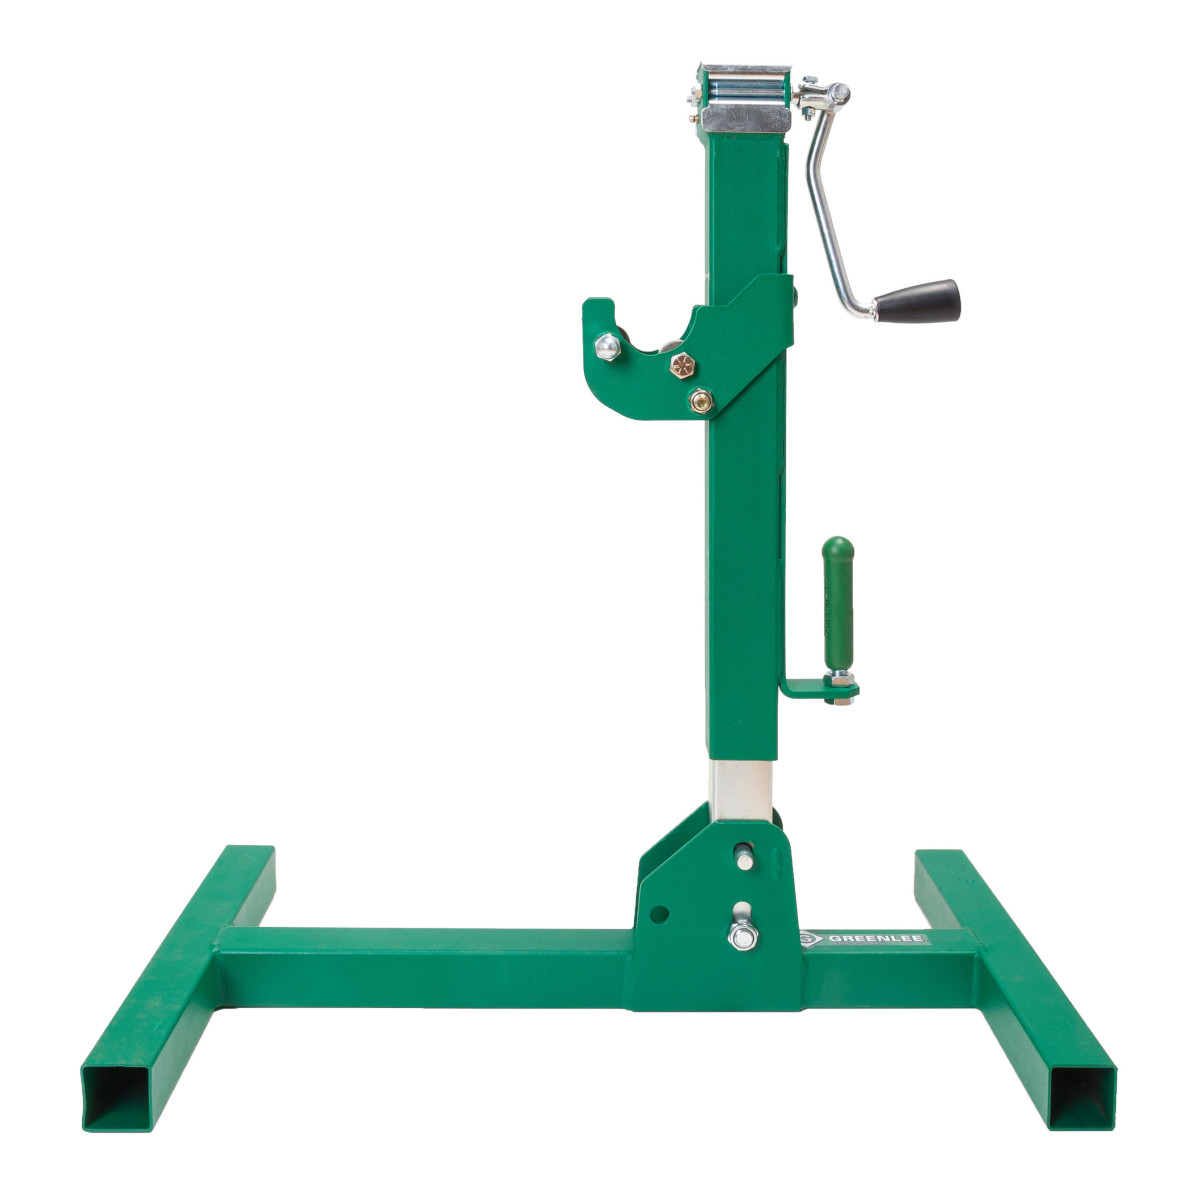 GRN RXM REEL STAND